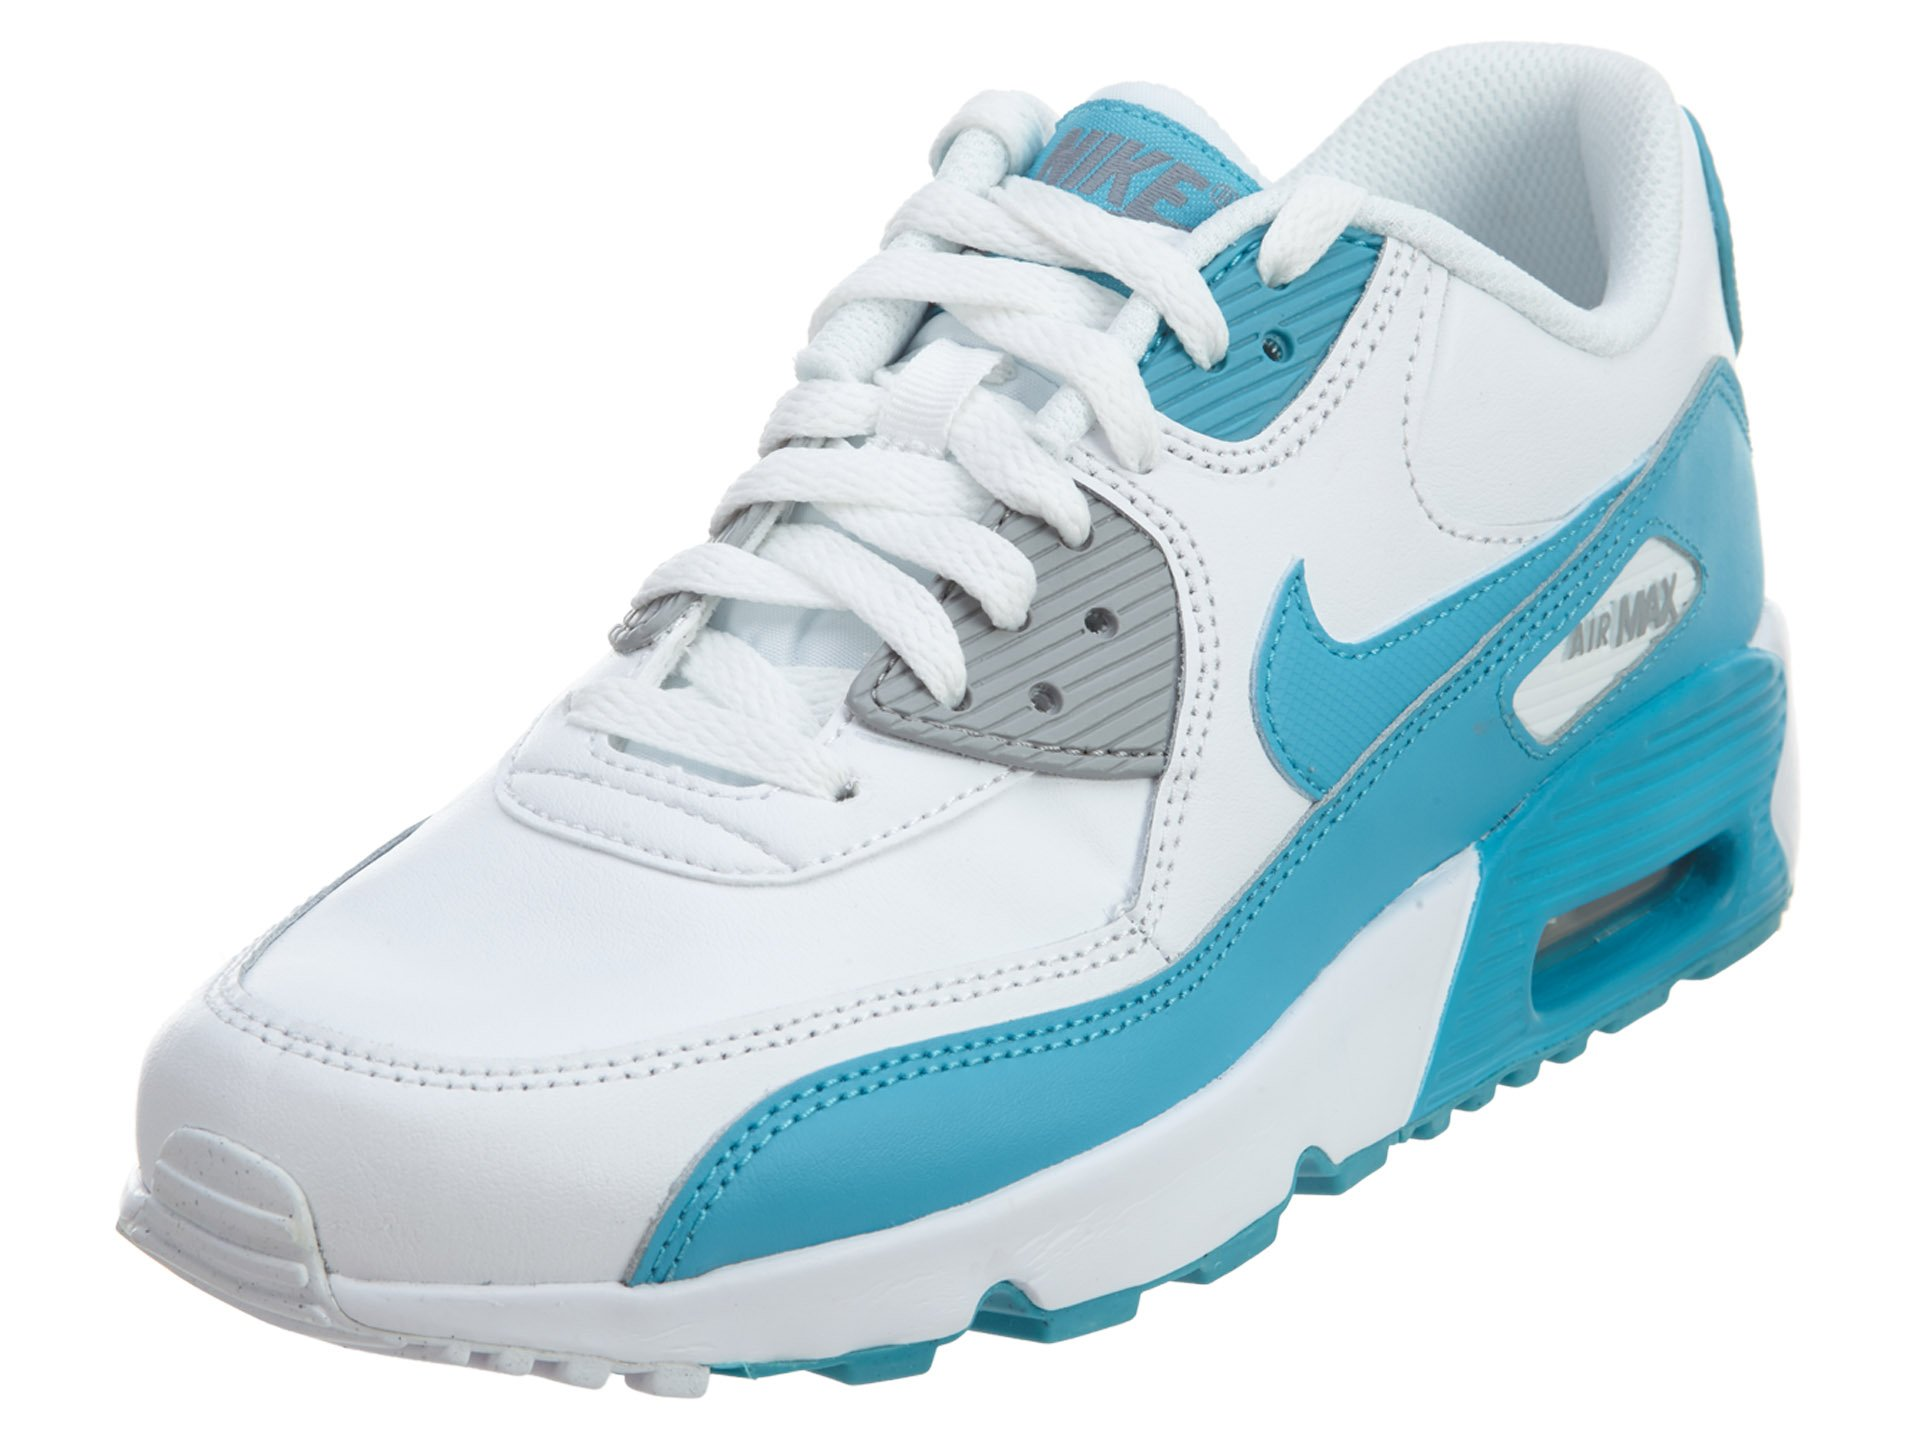 Nike GS Big Kids Air Max 90 Leather Fashion Shoes White/Chlorine Blue/Wolf Grey, 5.5